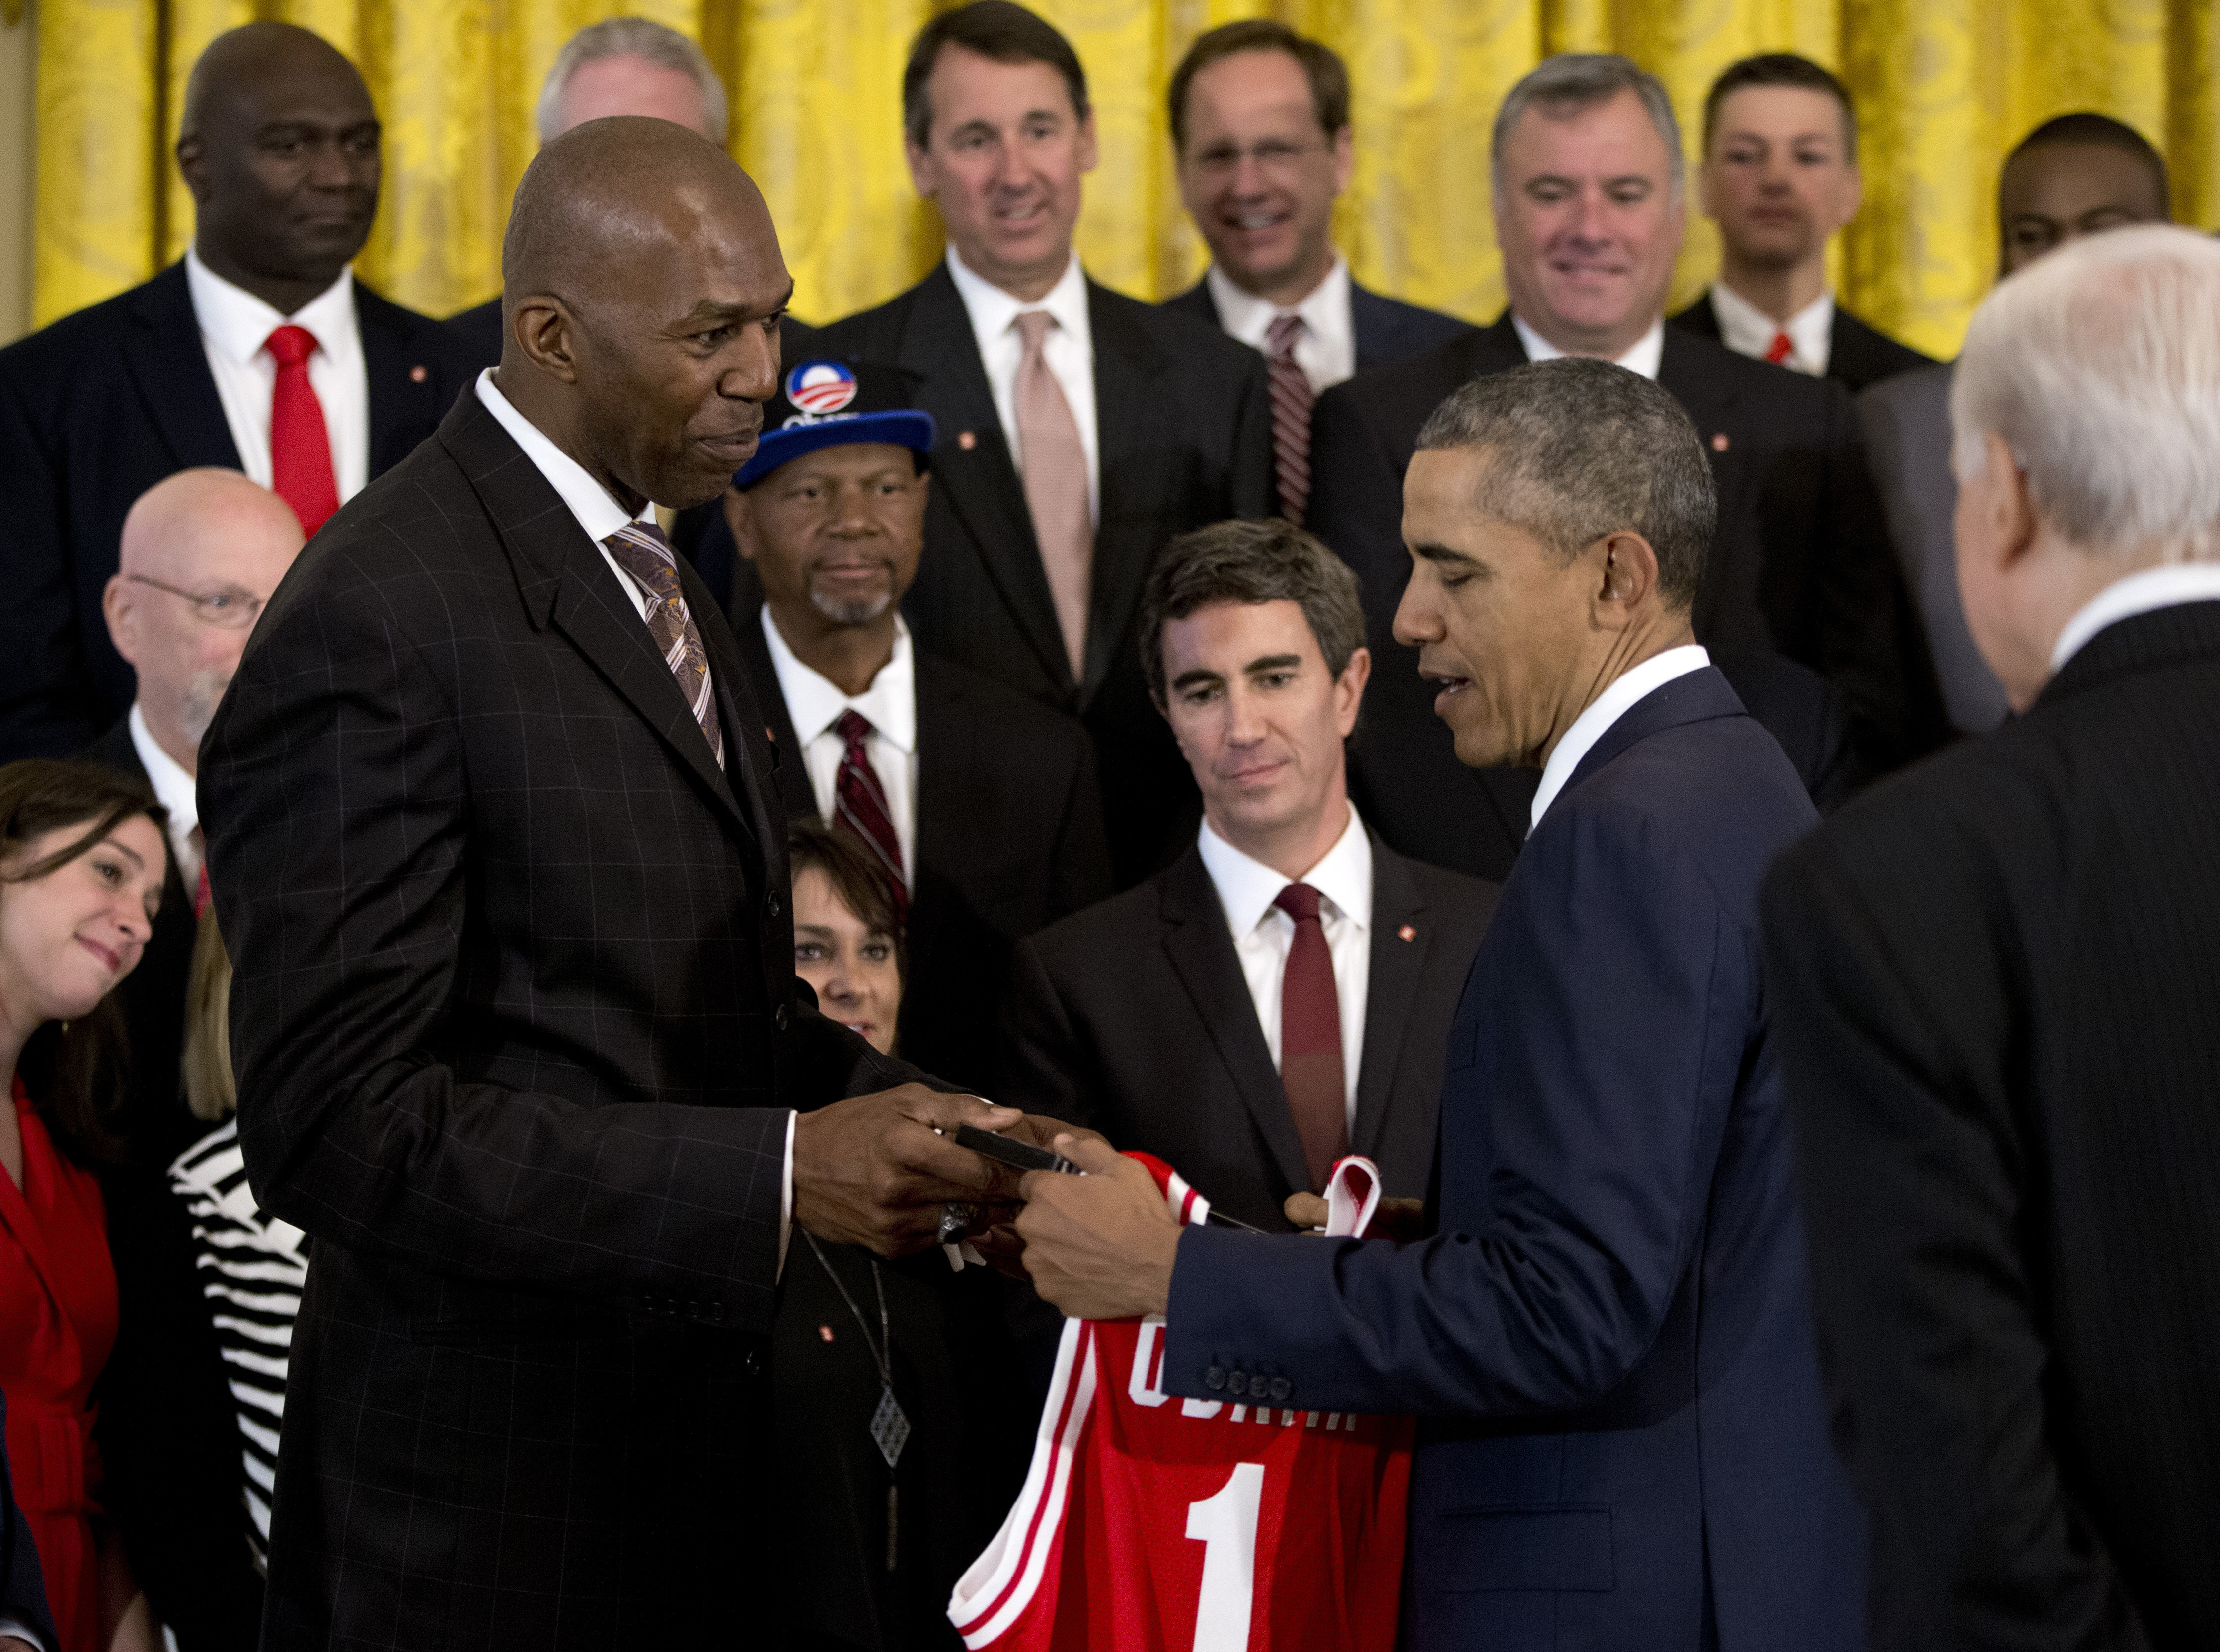 Former North Carolina State Wolfpack basketball, player, retired NBA player Thurl Bailey, gives President Barack Obama a jersey and gift as other members of the 1983 North Carolina State NCAA National Championship basketball watch, Monday, May 9, 2016, in